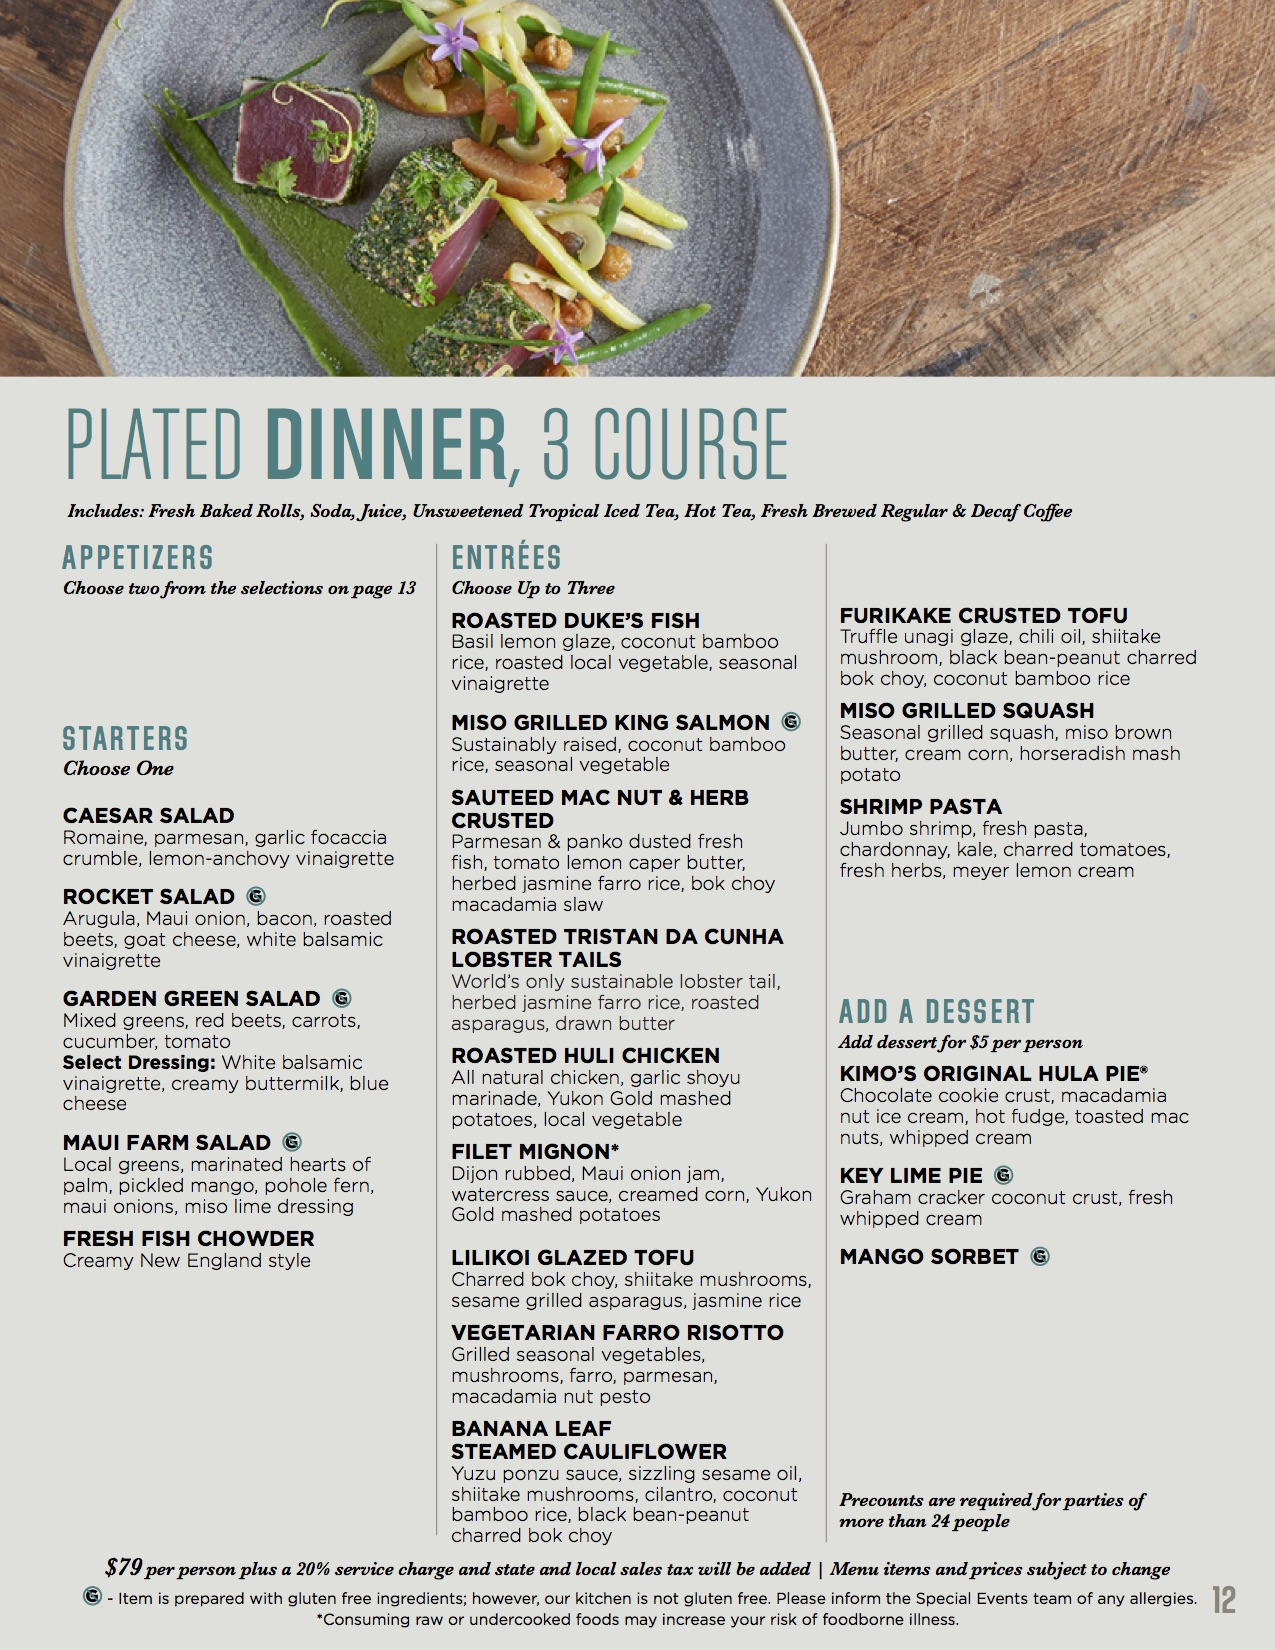 Wedding Plated Dinner 3 Course Menu